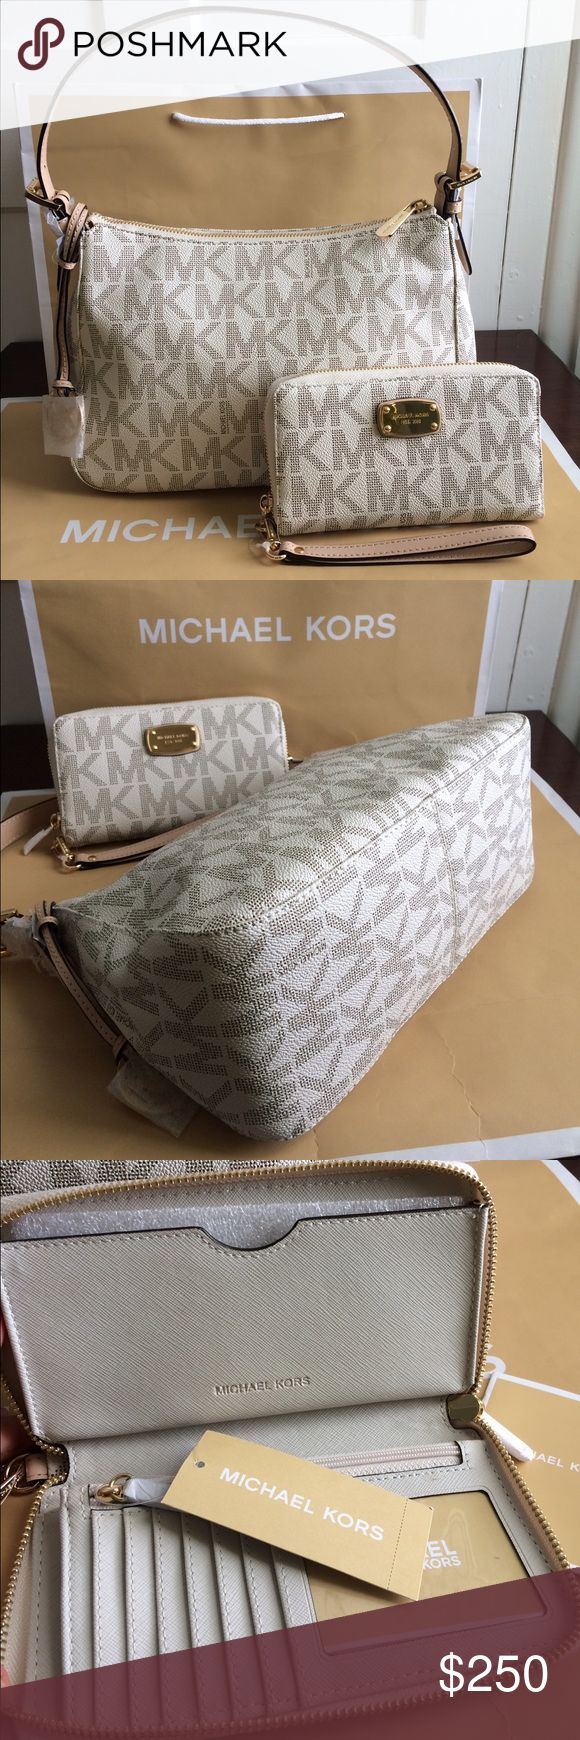 "Michael Kors Shoulder Purse and Wallet new 100% Brand new with tag and Authentic. Color: Vanilla MK Signature PVC w/ leather trim Top zip closure Gold tone Hardware Leather shoulder 8"" drop strap with Double Buckle Adjustment Michael Kors Gold Charm Interior: 1 Zip Pocket & 2 Slide Pockets MK signature Fabric lining 12"" (L) X 7.5"" (H) X 4.5"" (D)  Bag Retail price $198 Wallet retail price $108 Price is firm. Thank you Michael Kors Bags Shoulder Bags"